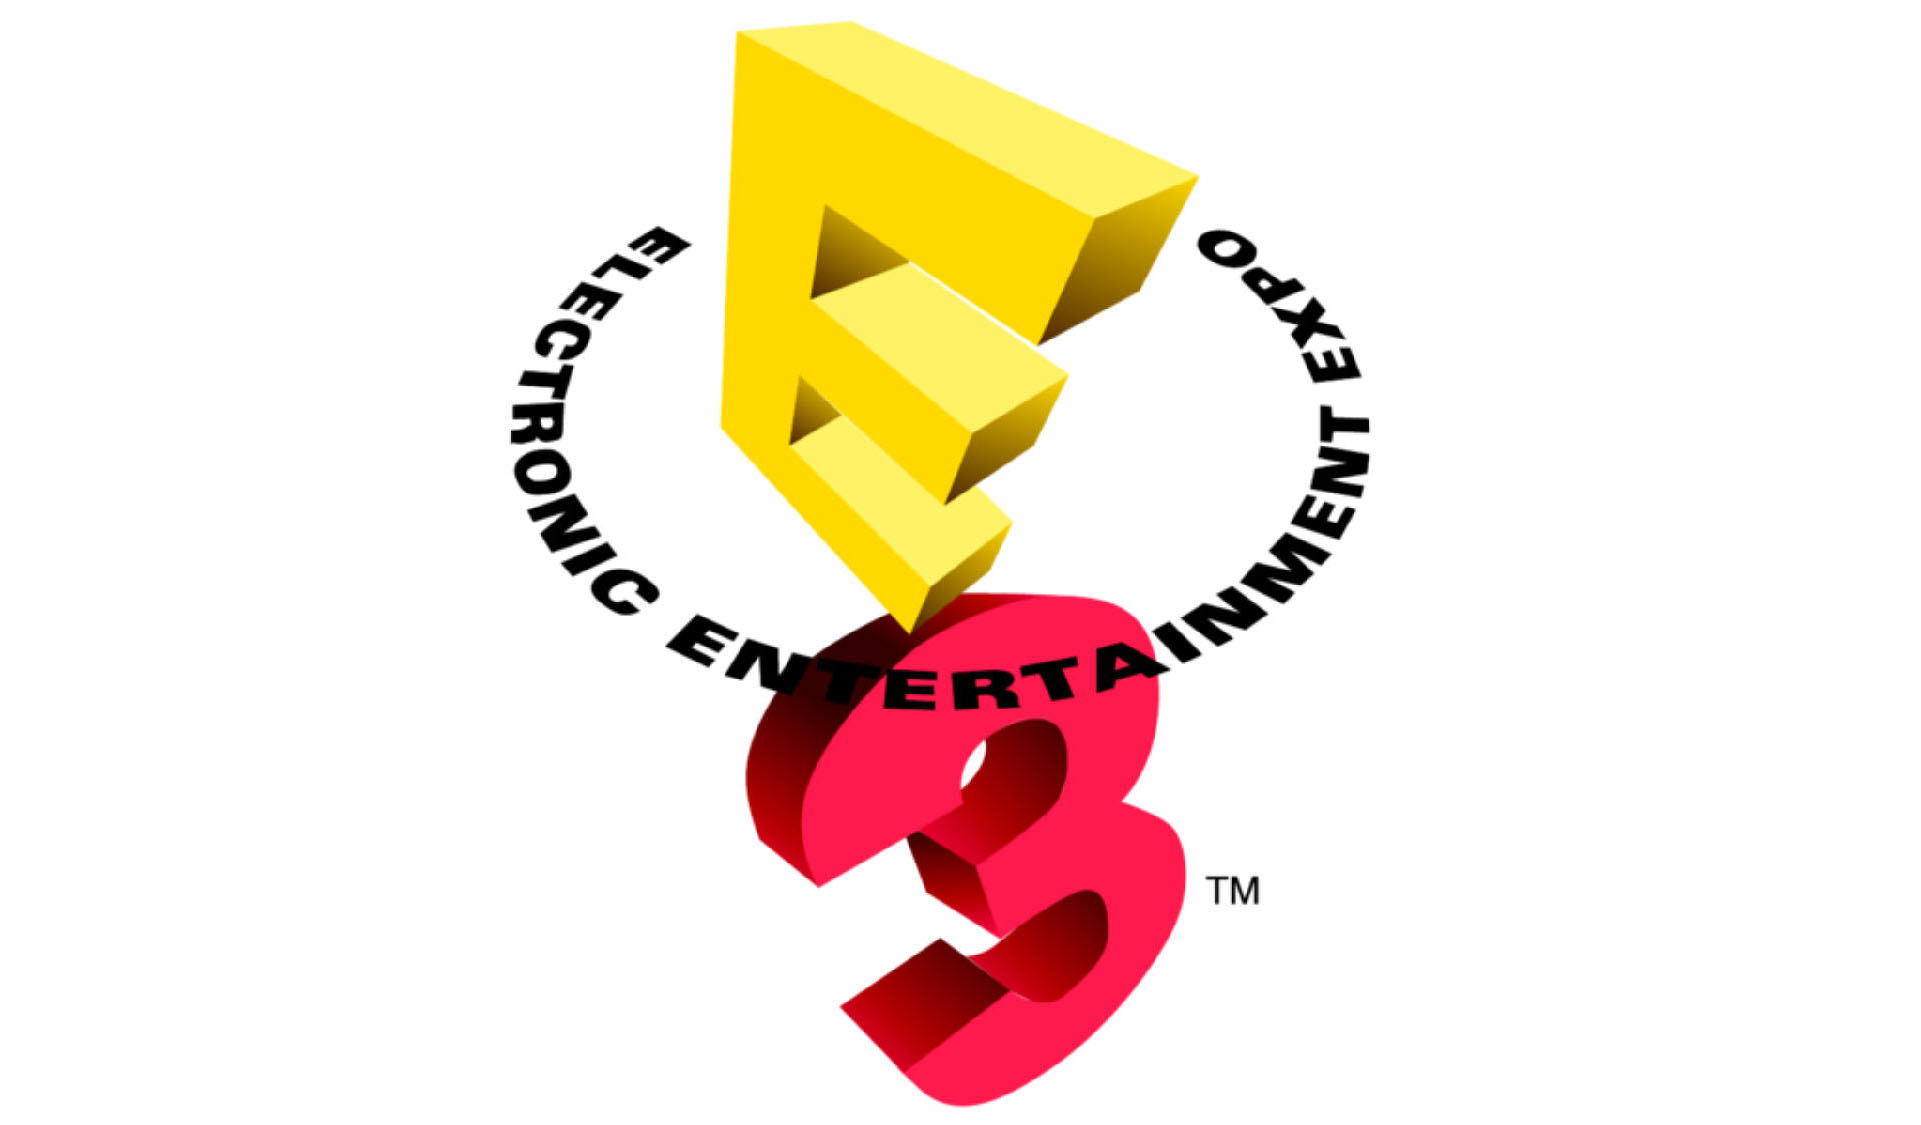 EA at E3 – All You Need to Know